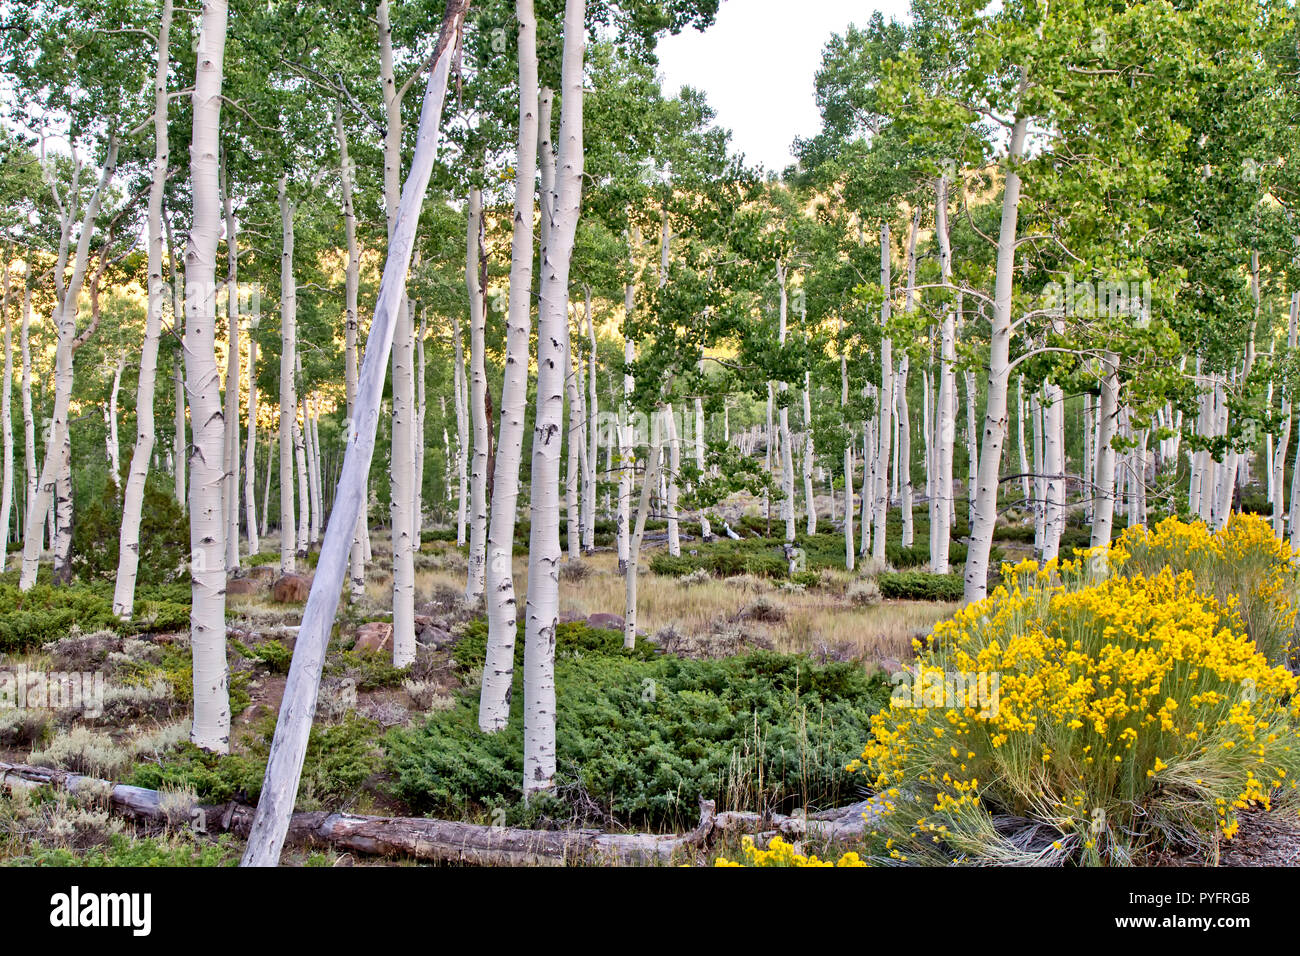 Quaking Aspen Grove 'Pando Clone'  at sunrise,  also known as Trembling Giant, Clonal colony of an idividual male quaking aspen. - Stock Image